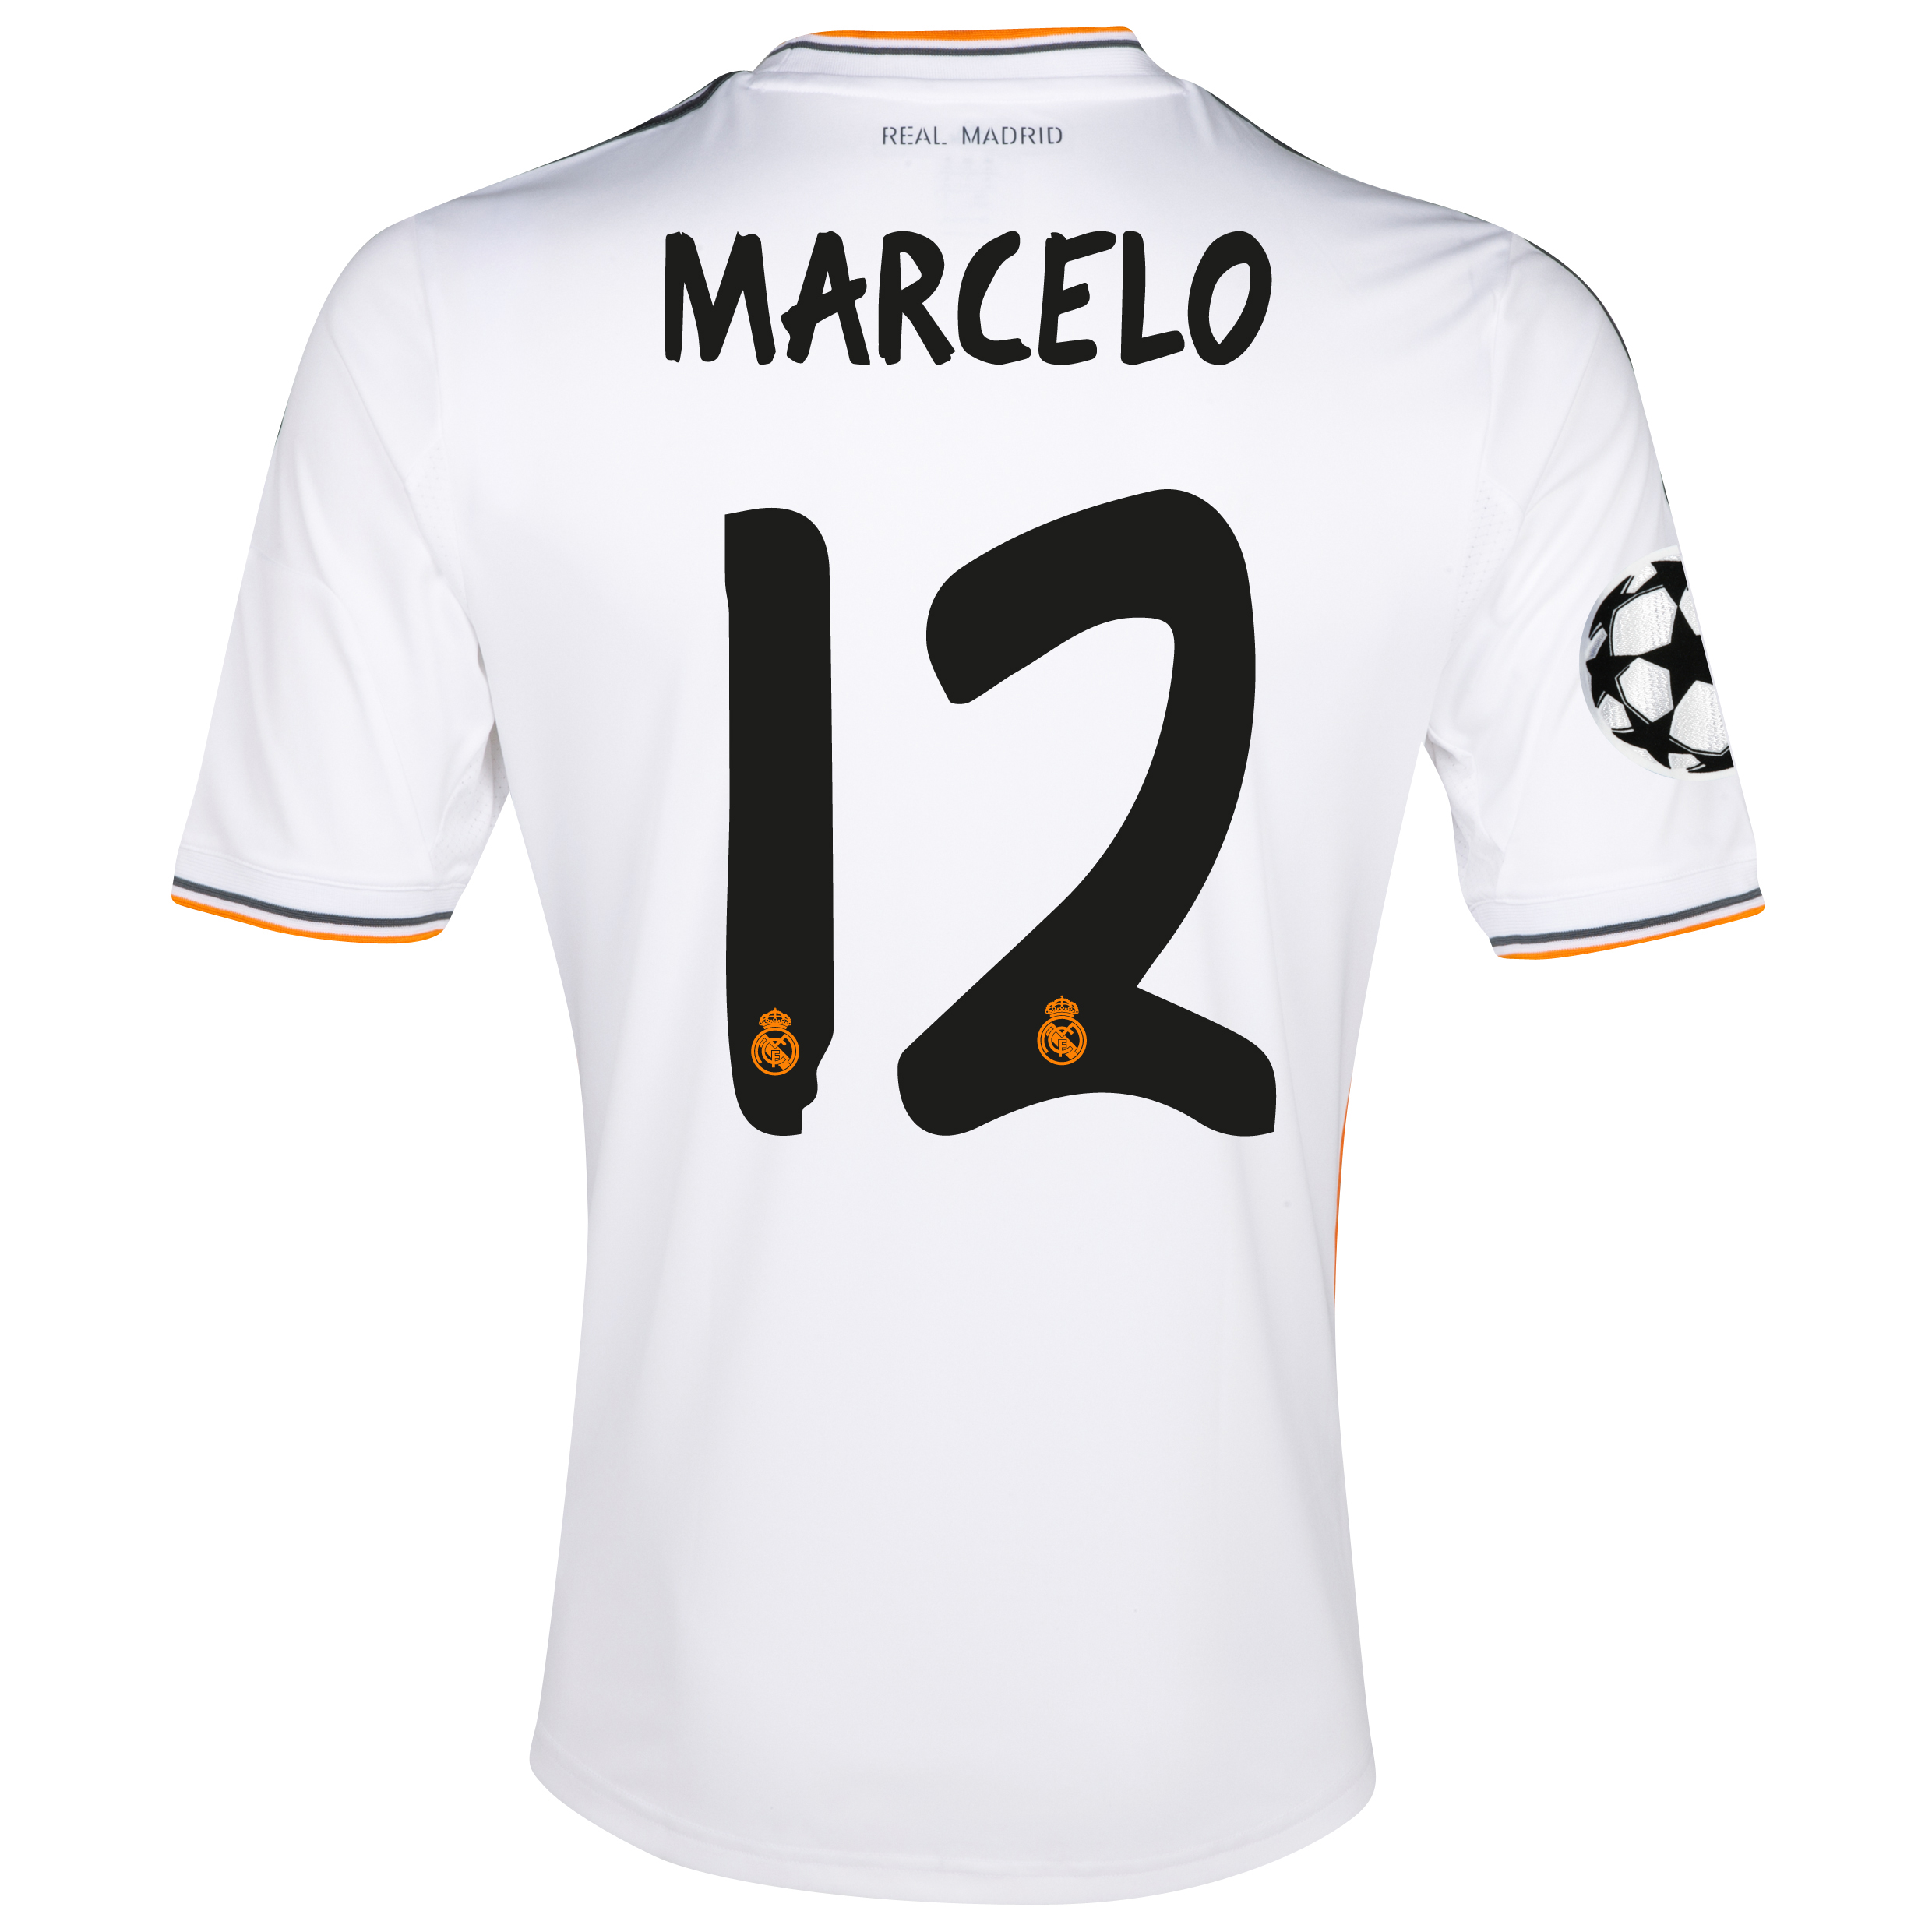 Real Madrid UEFA Champions League Home Shirt 2013/14 - kids with Marcelo 12 printing